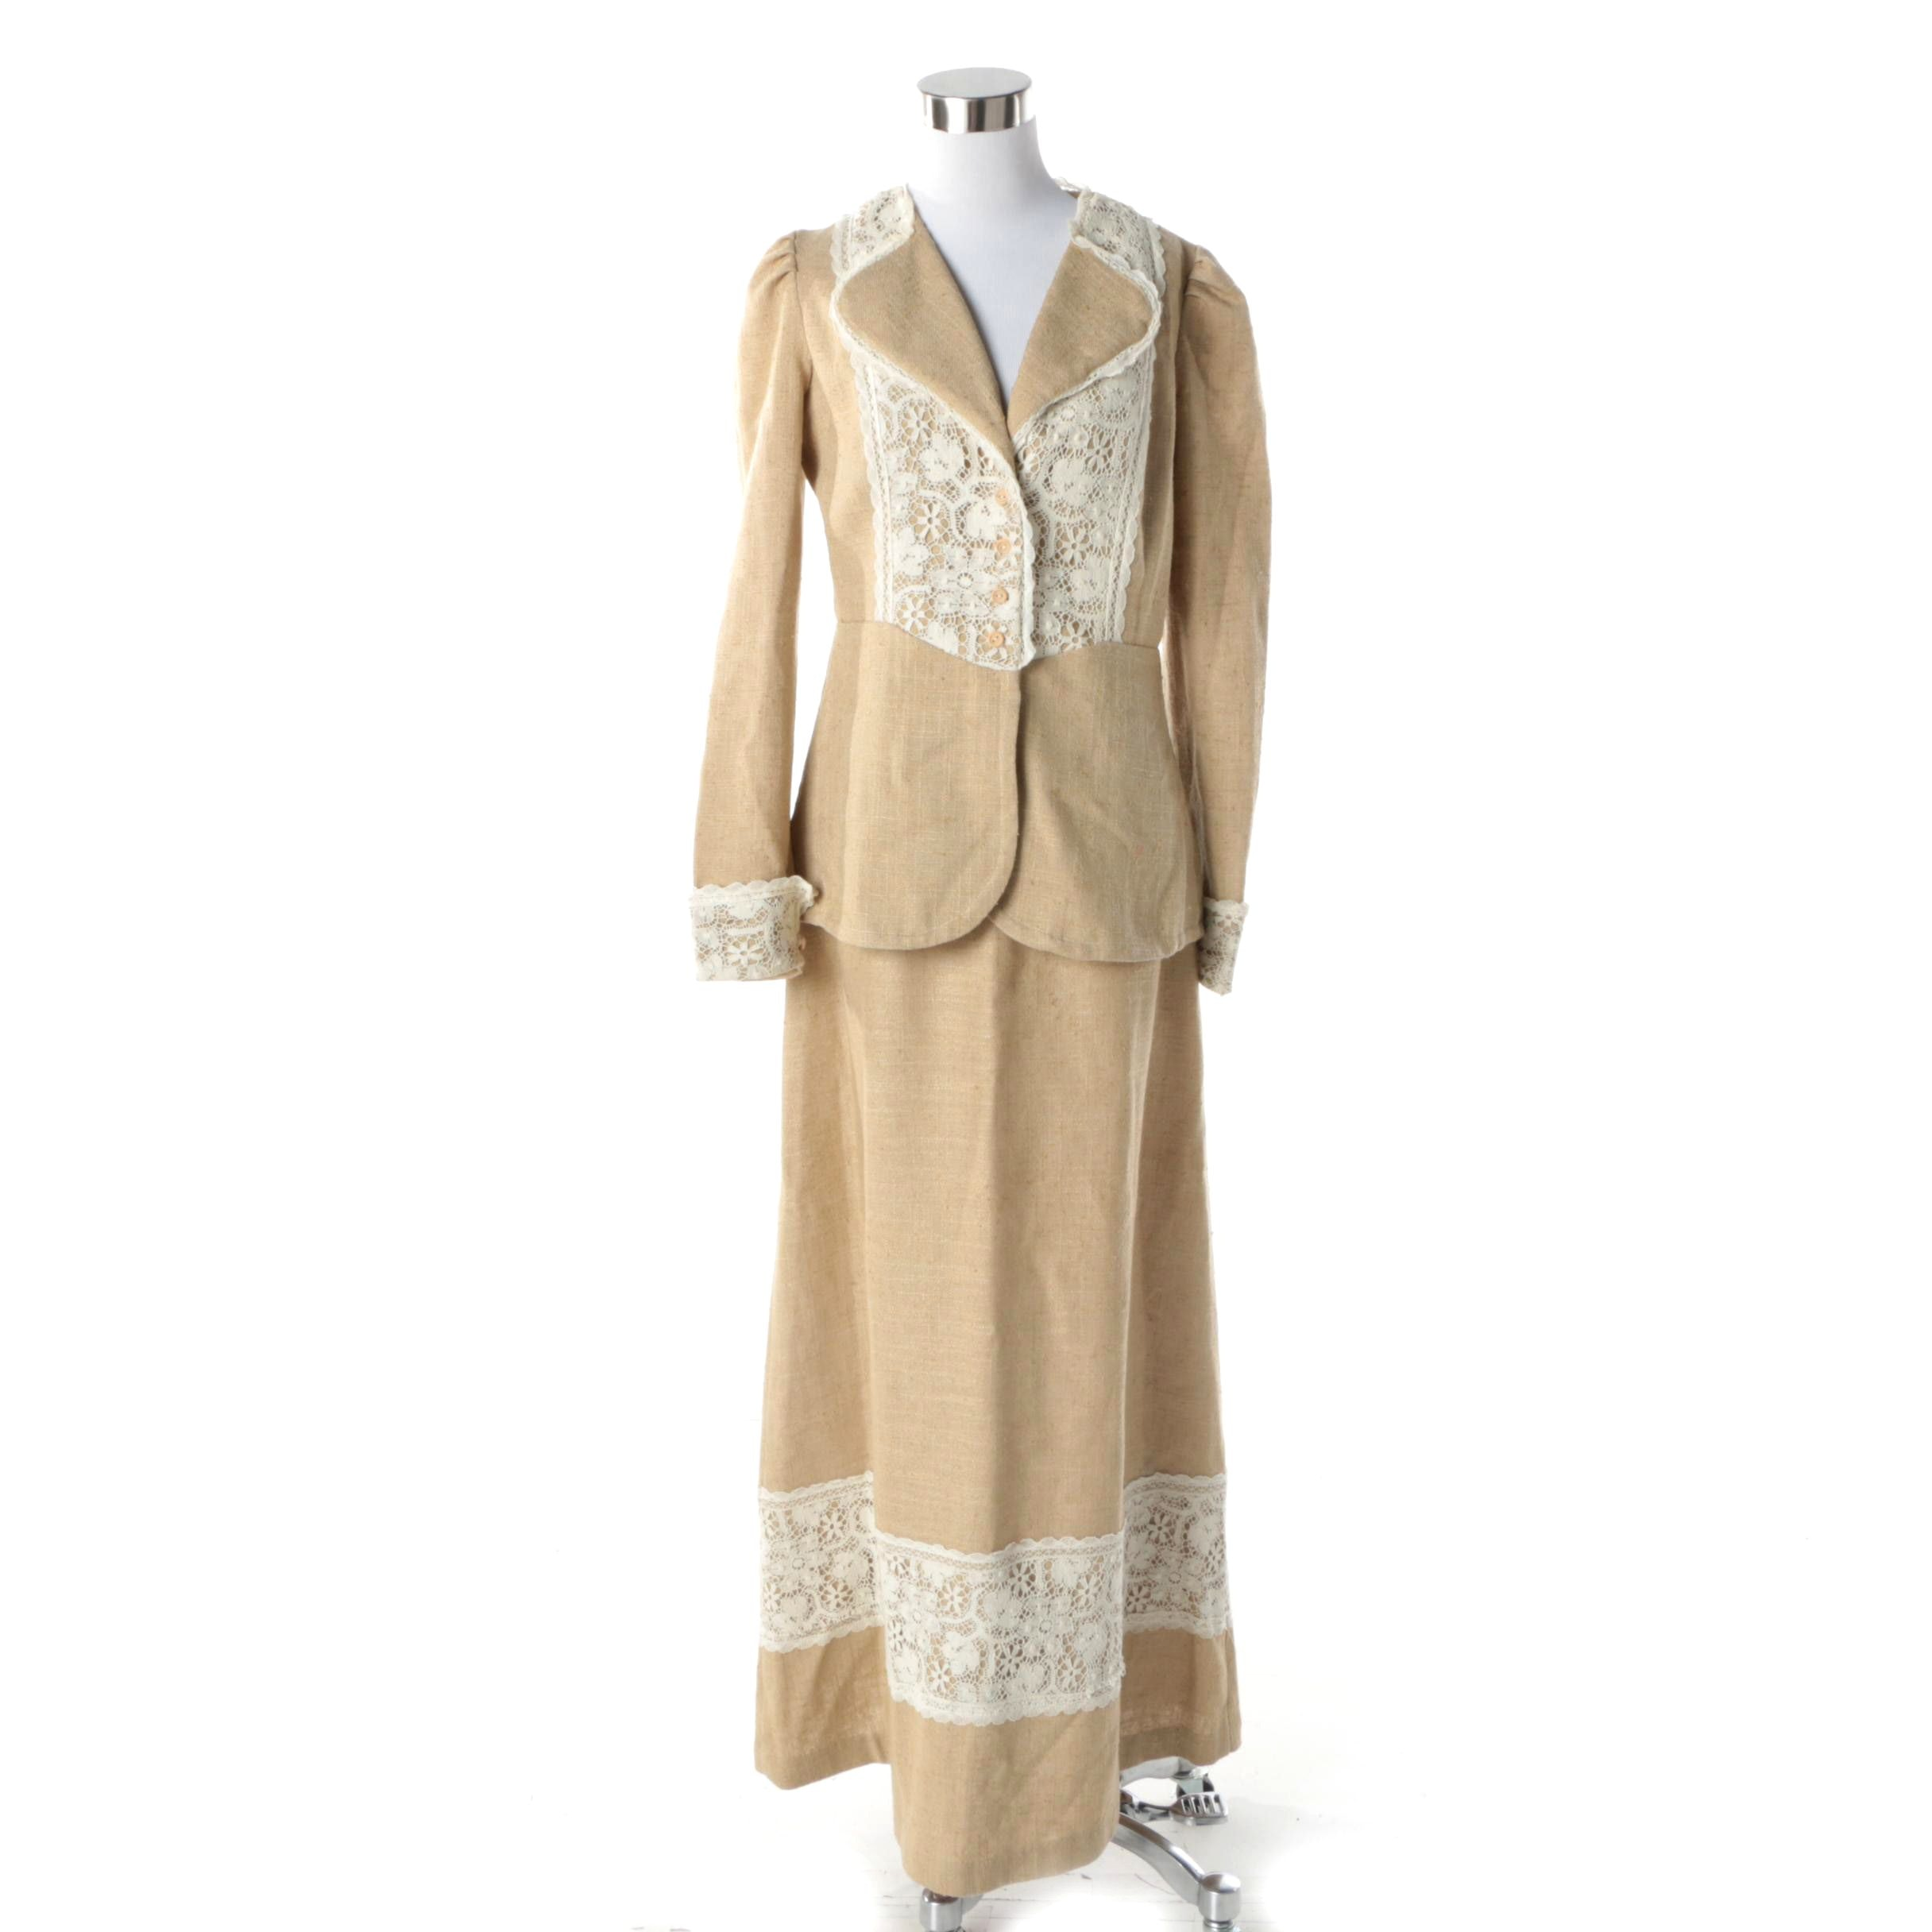 1980s Jessica's Gunnies of San Francisco Linen and White Lace Maxi Skirt Suit